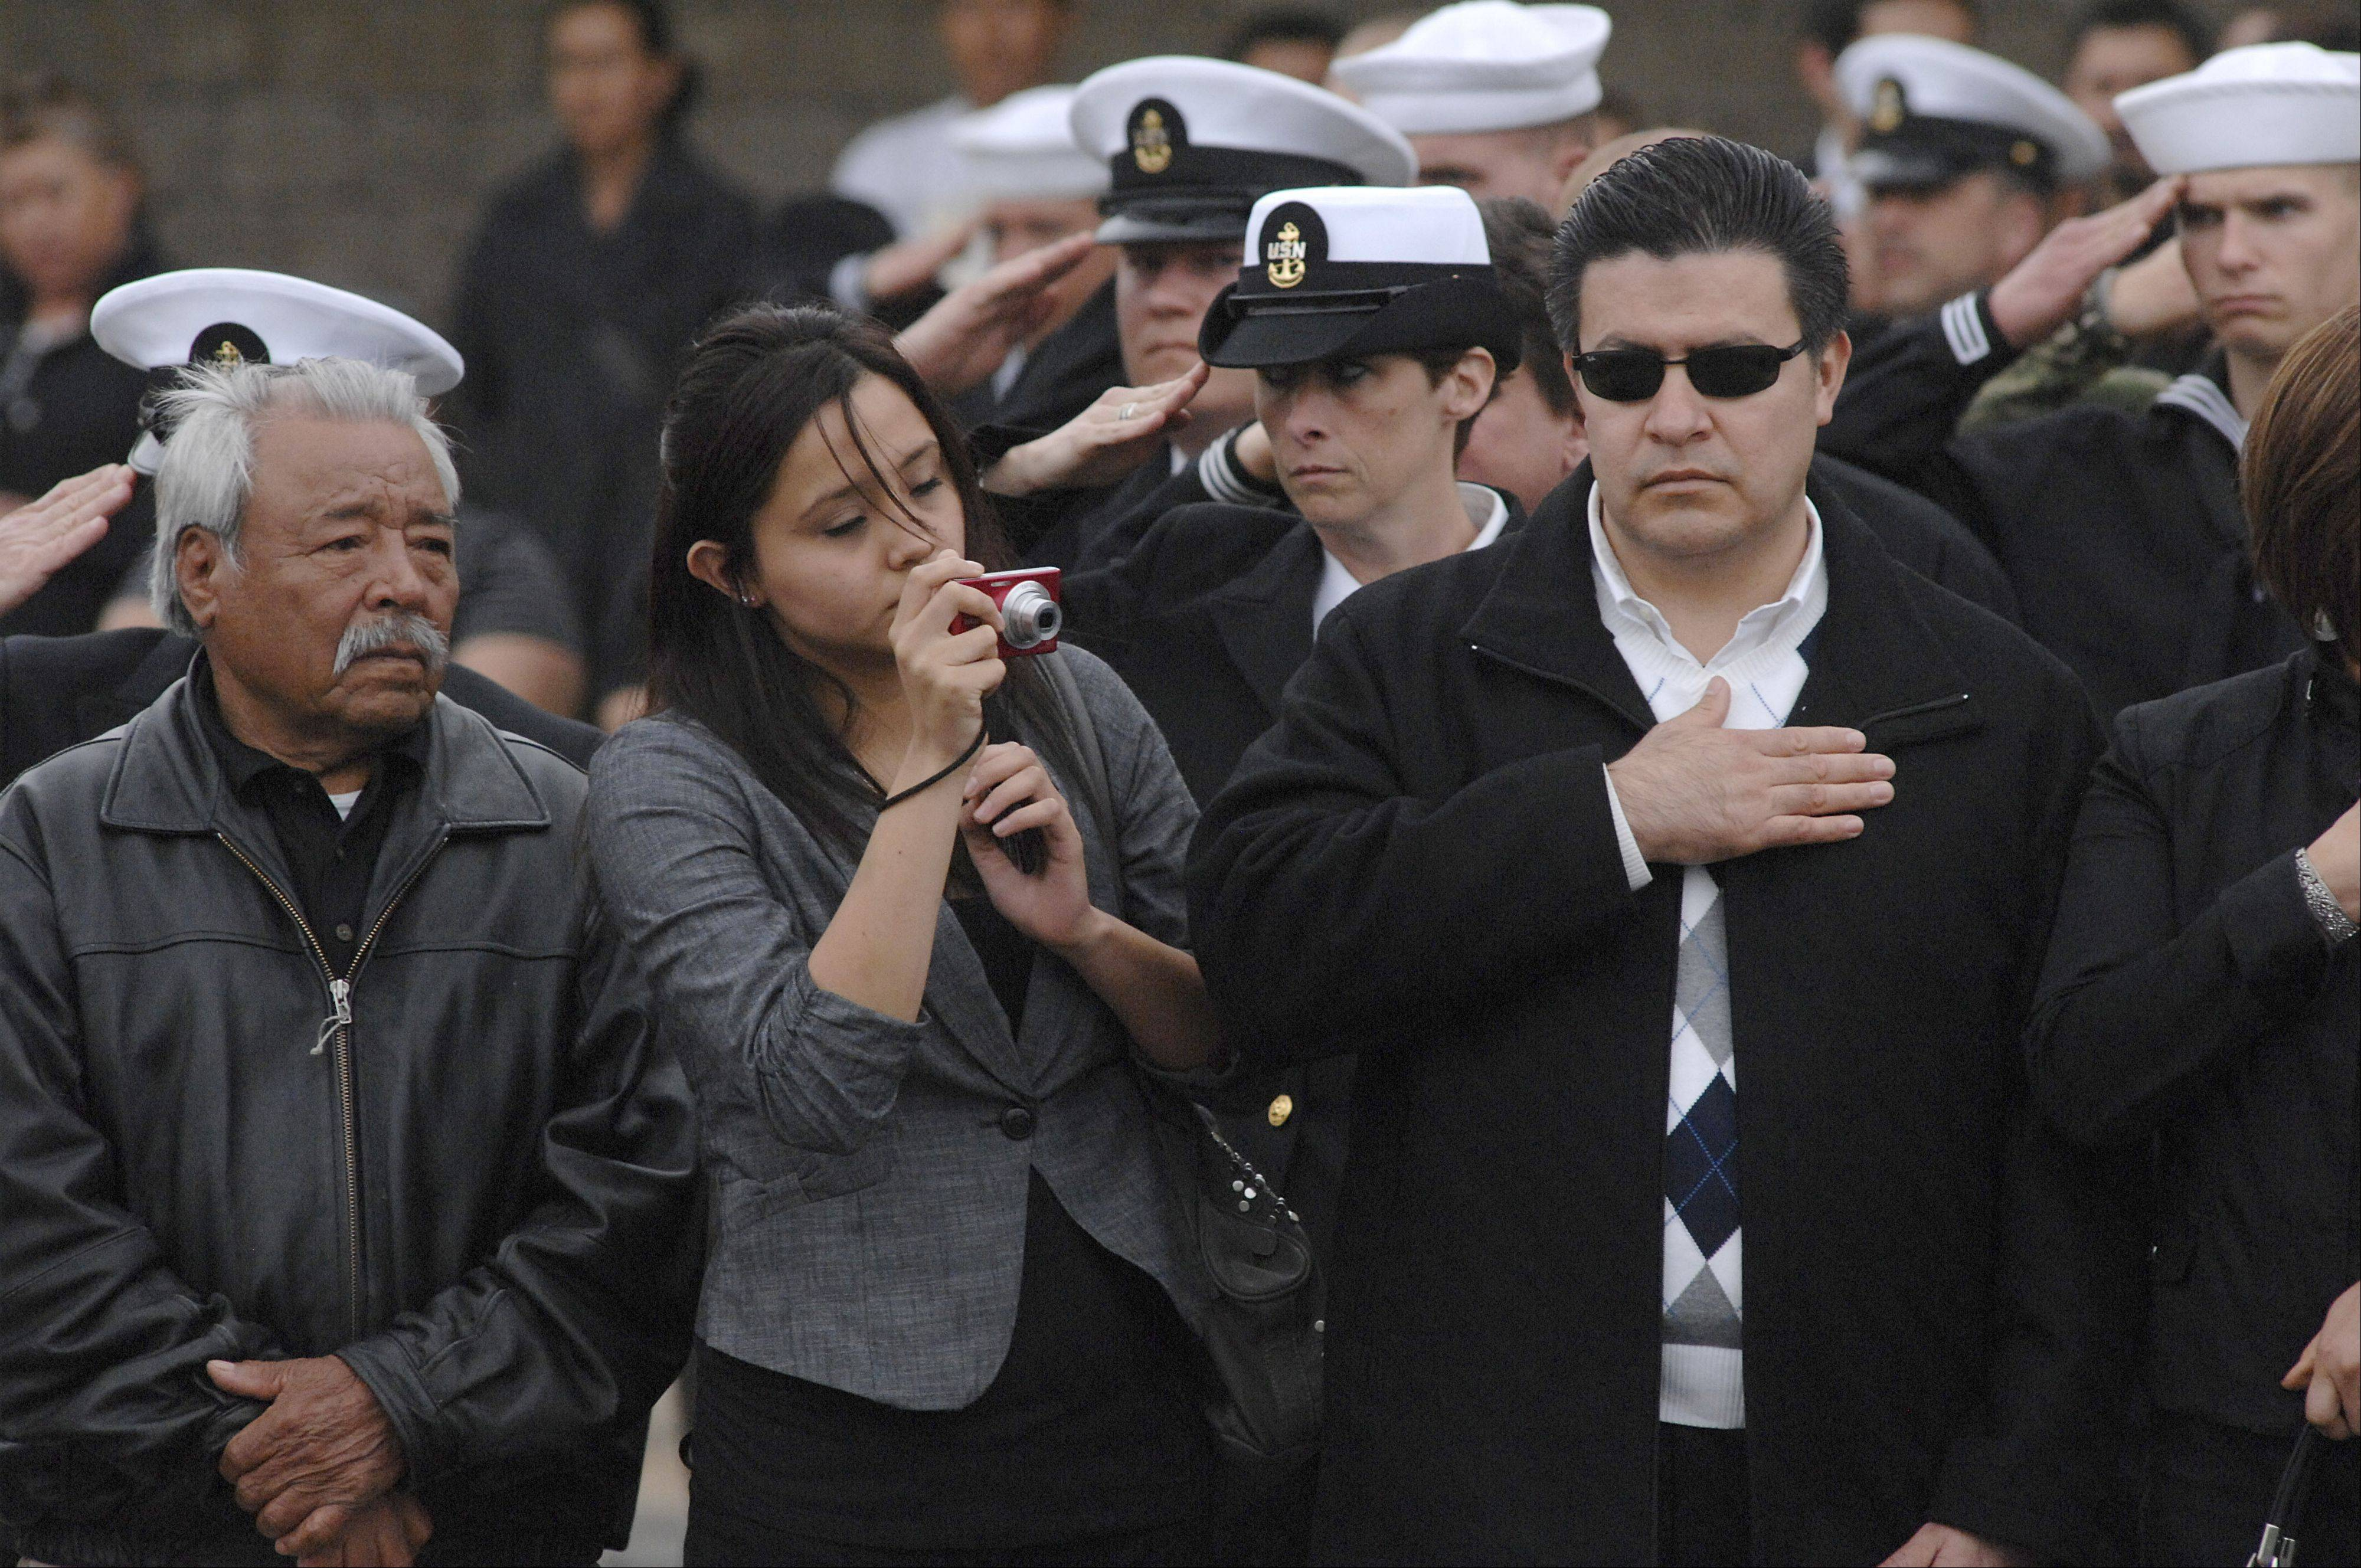 Members of the military, family and friends of Cpl. Alex Martinez salute or place their hands over their hearts as the limos carrying his wife, Julianna, and immediate family away Saturday after his funeral at Life Changers International Church in Hoffman Estates.